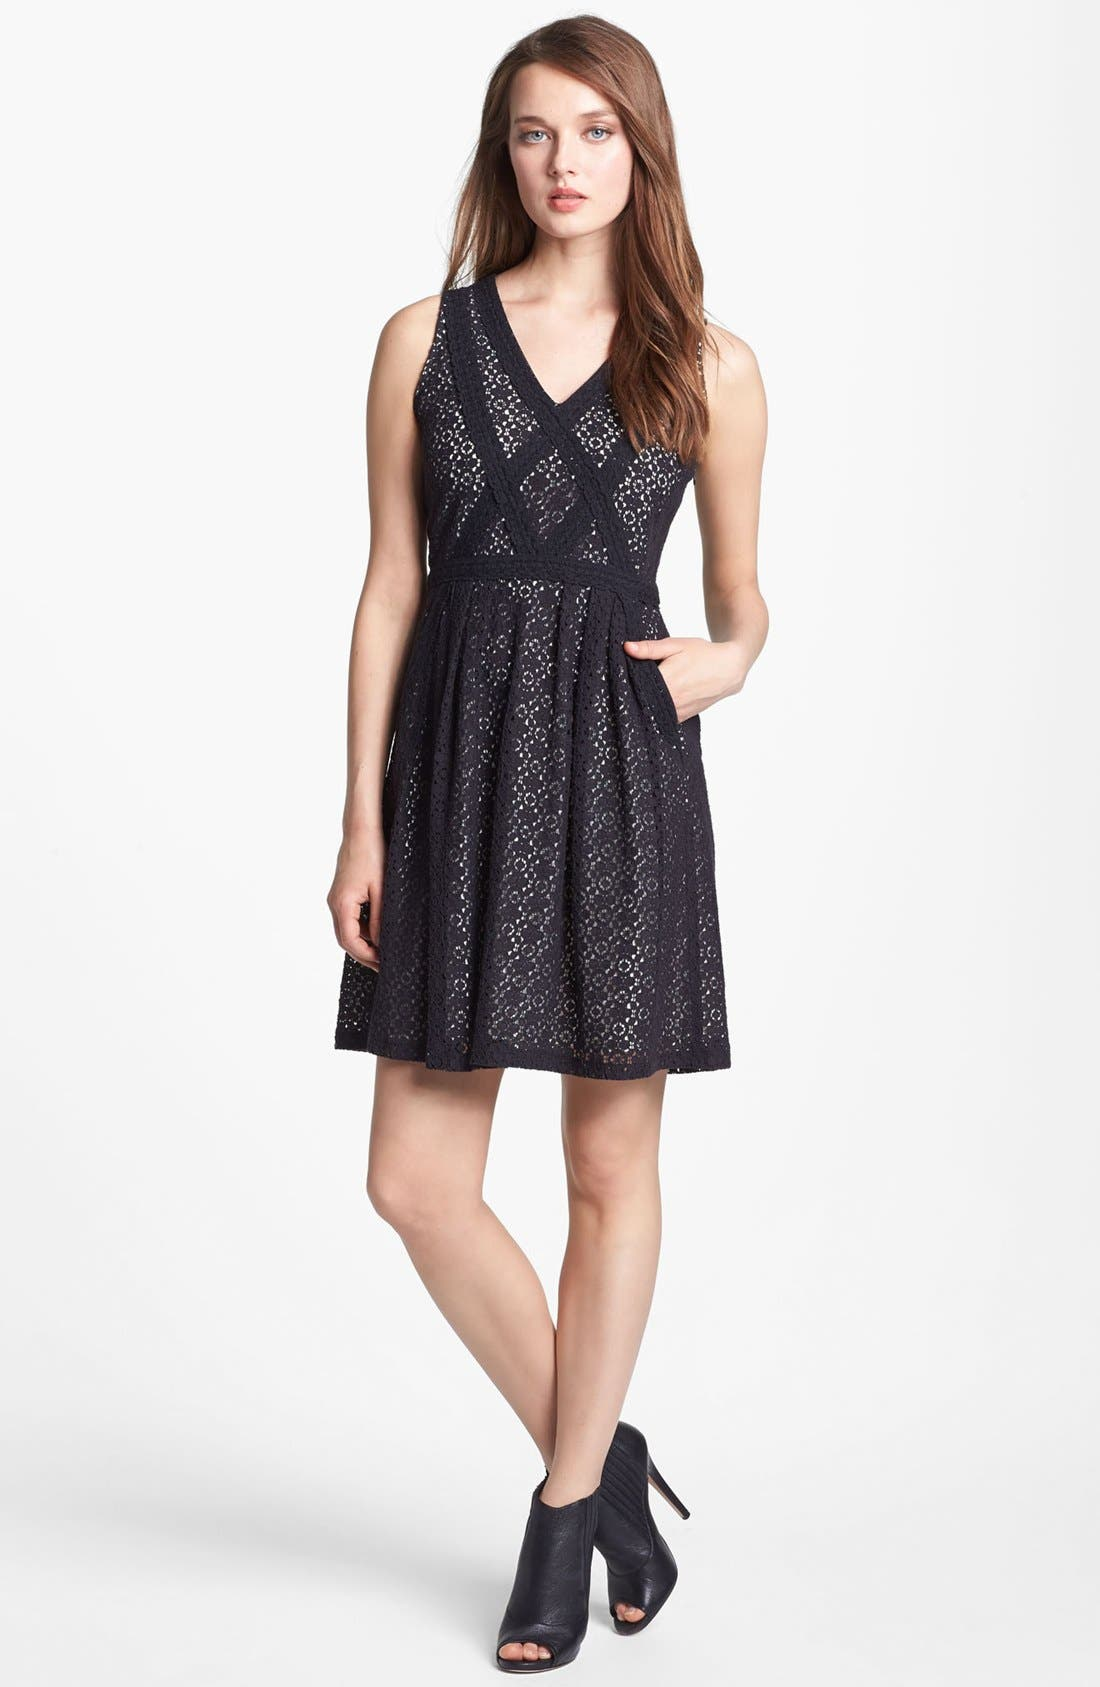 Alternate Image 1 Selected - MARC BY MARC JACOBS 'Collage' Lace Fit & Flare Dress